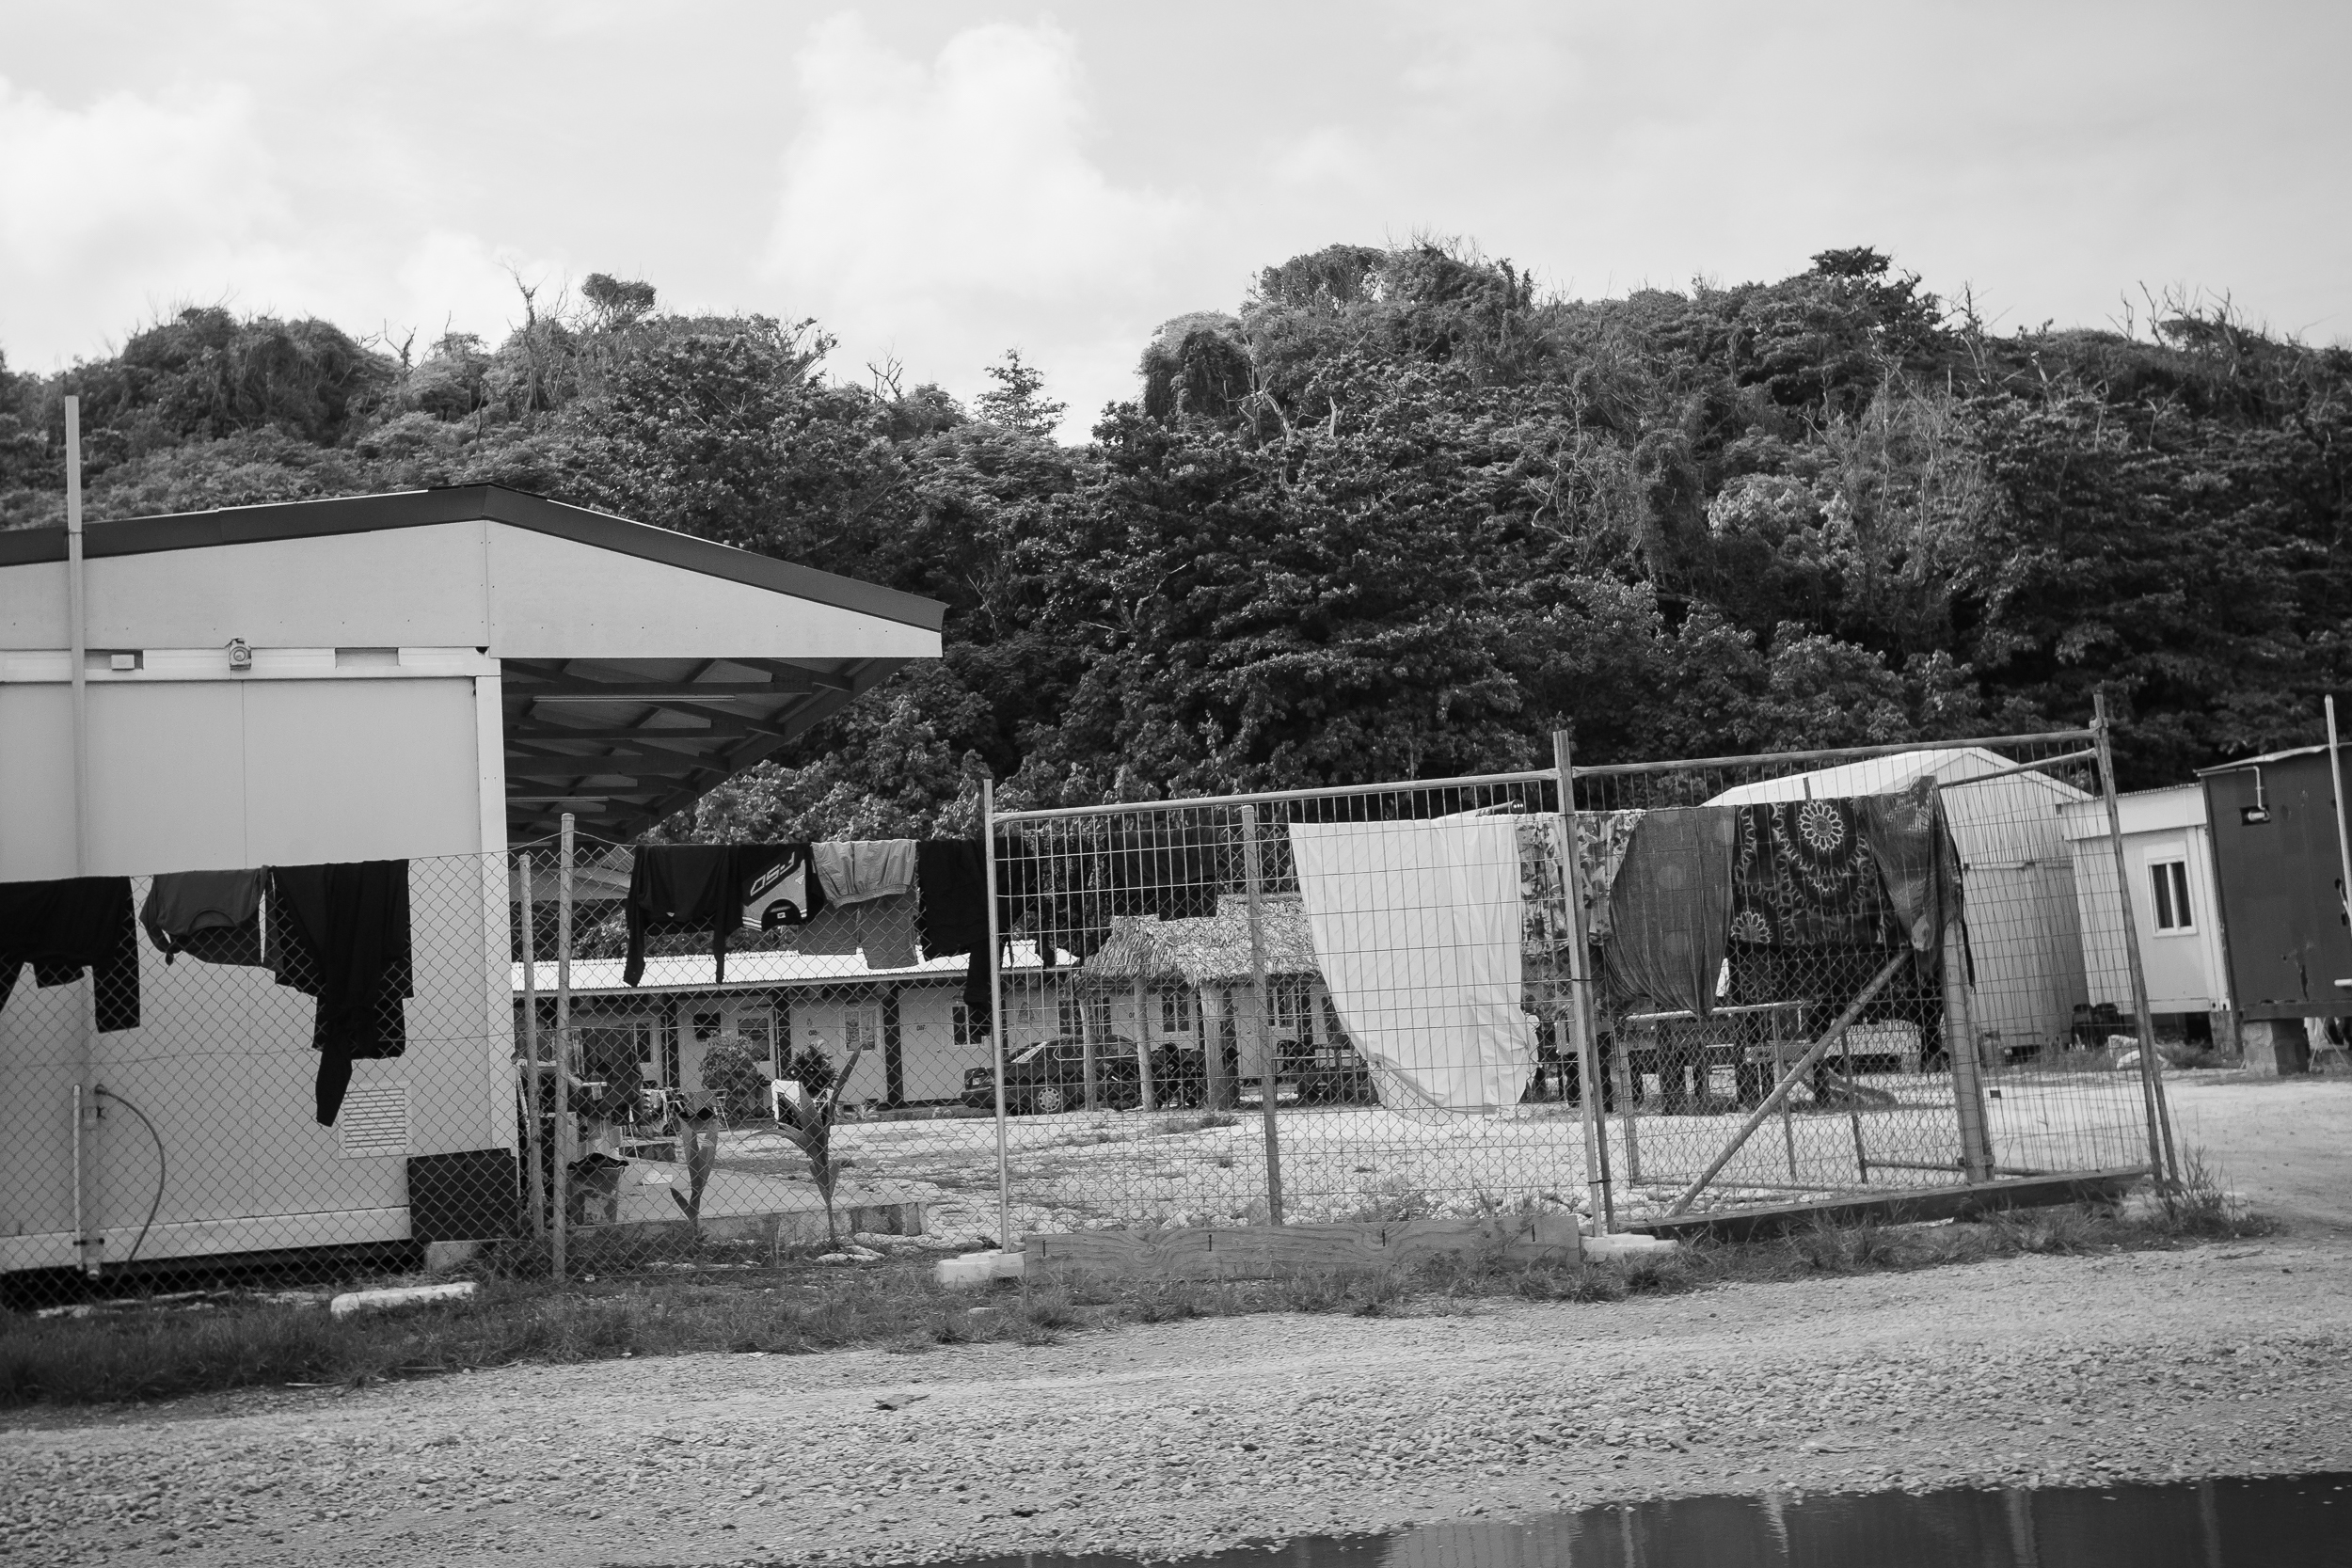 In 2014, refugees were gradually granted asylum by the Nauruan government and were released into the community. Anibare is an open camp on the eastern side of Nauru home to those who have been granted asylum. Refugees living here can come and go as they please, but the camps are still guarded and behind fences.